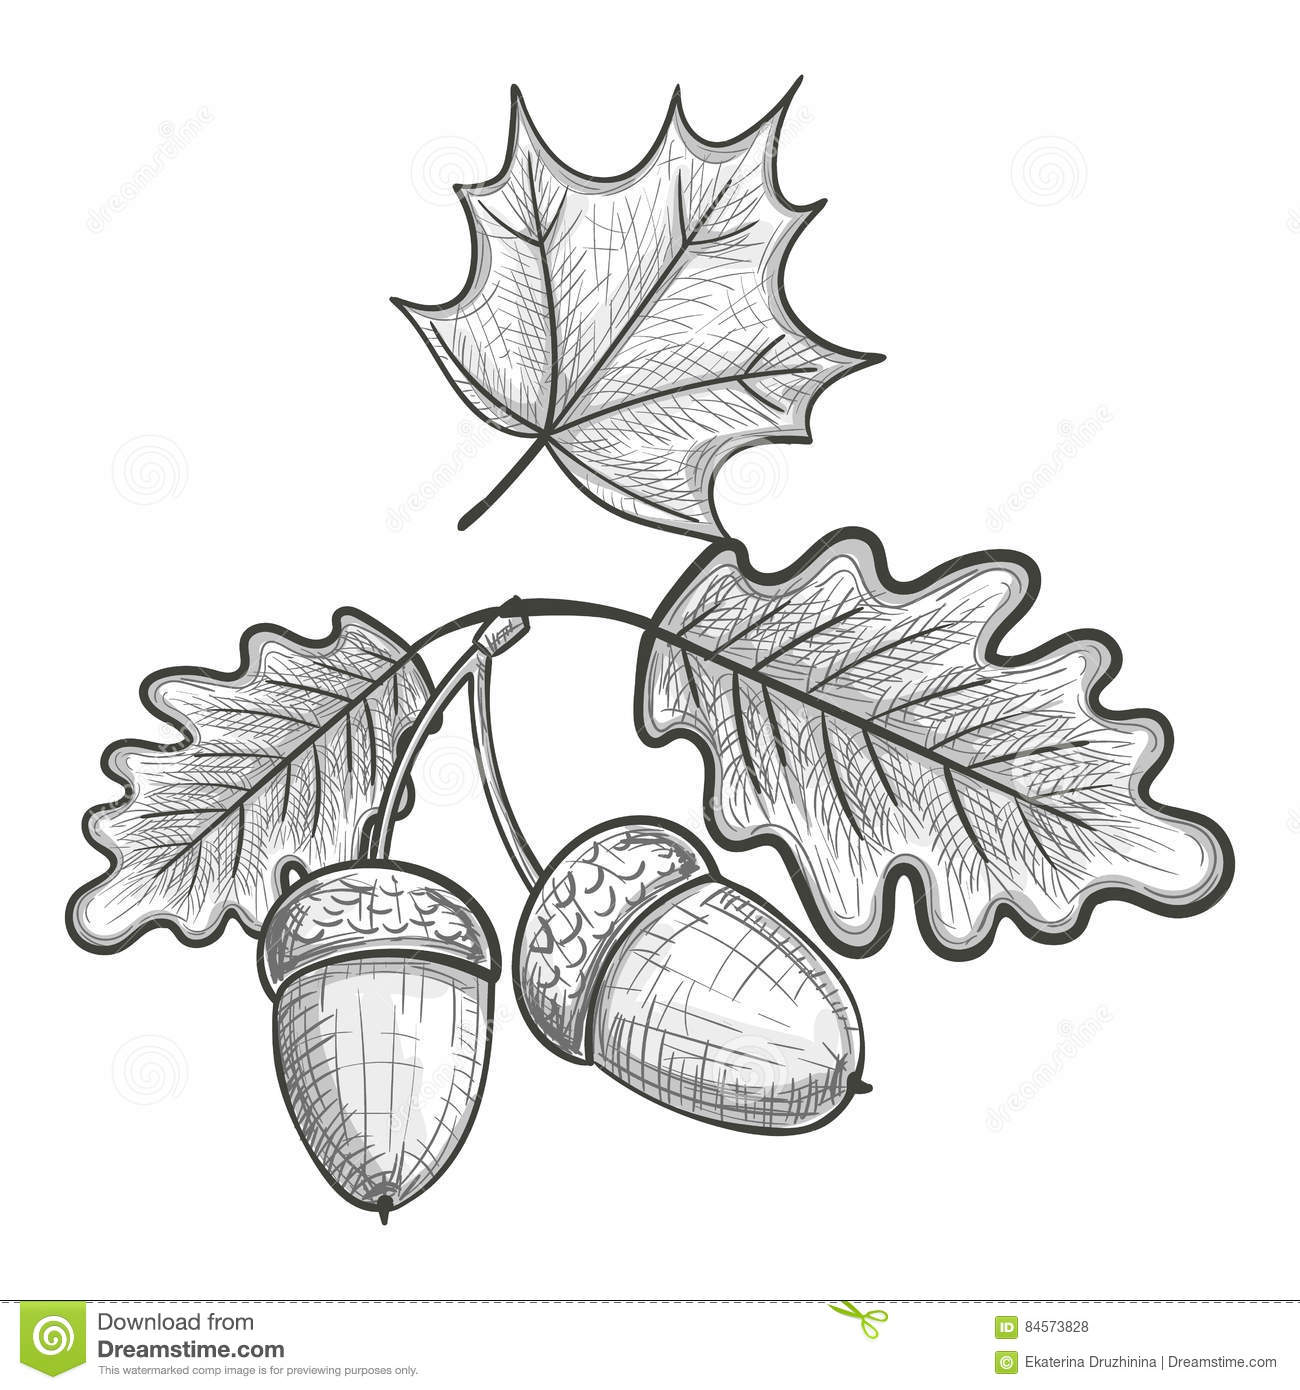 Sketch Of An Oak Leaf And Acorn Stock Vector